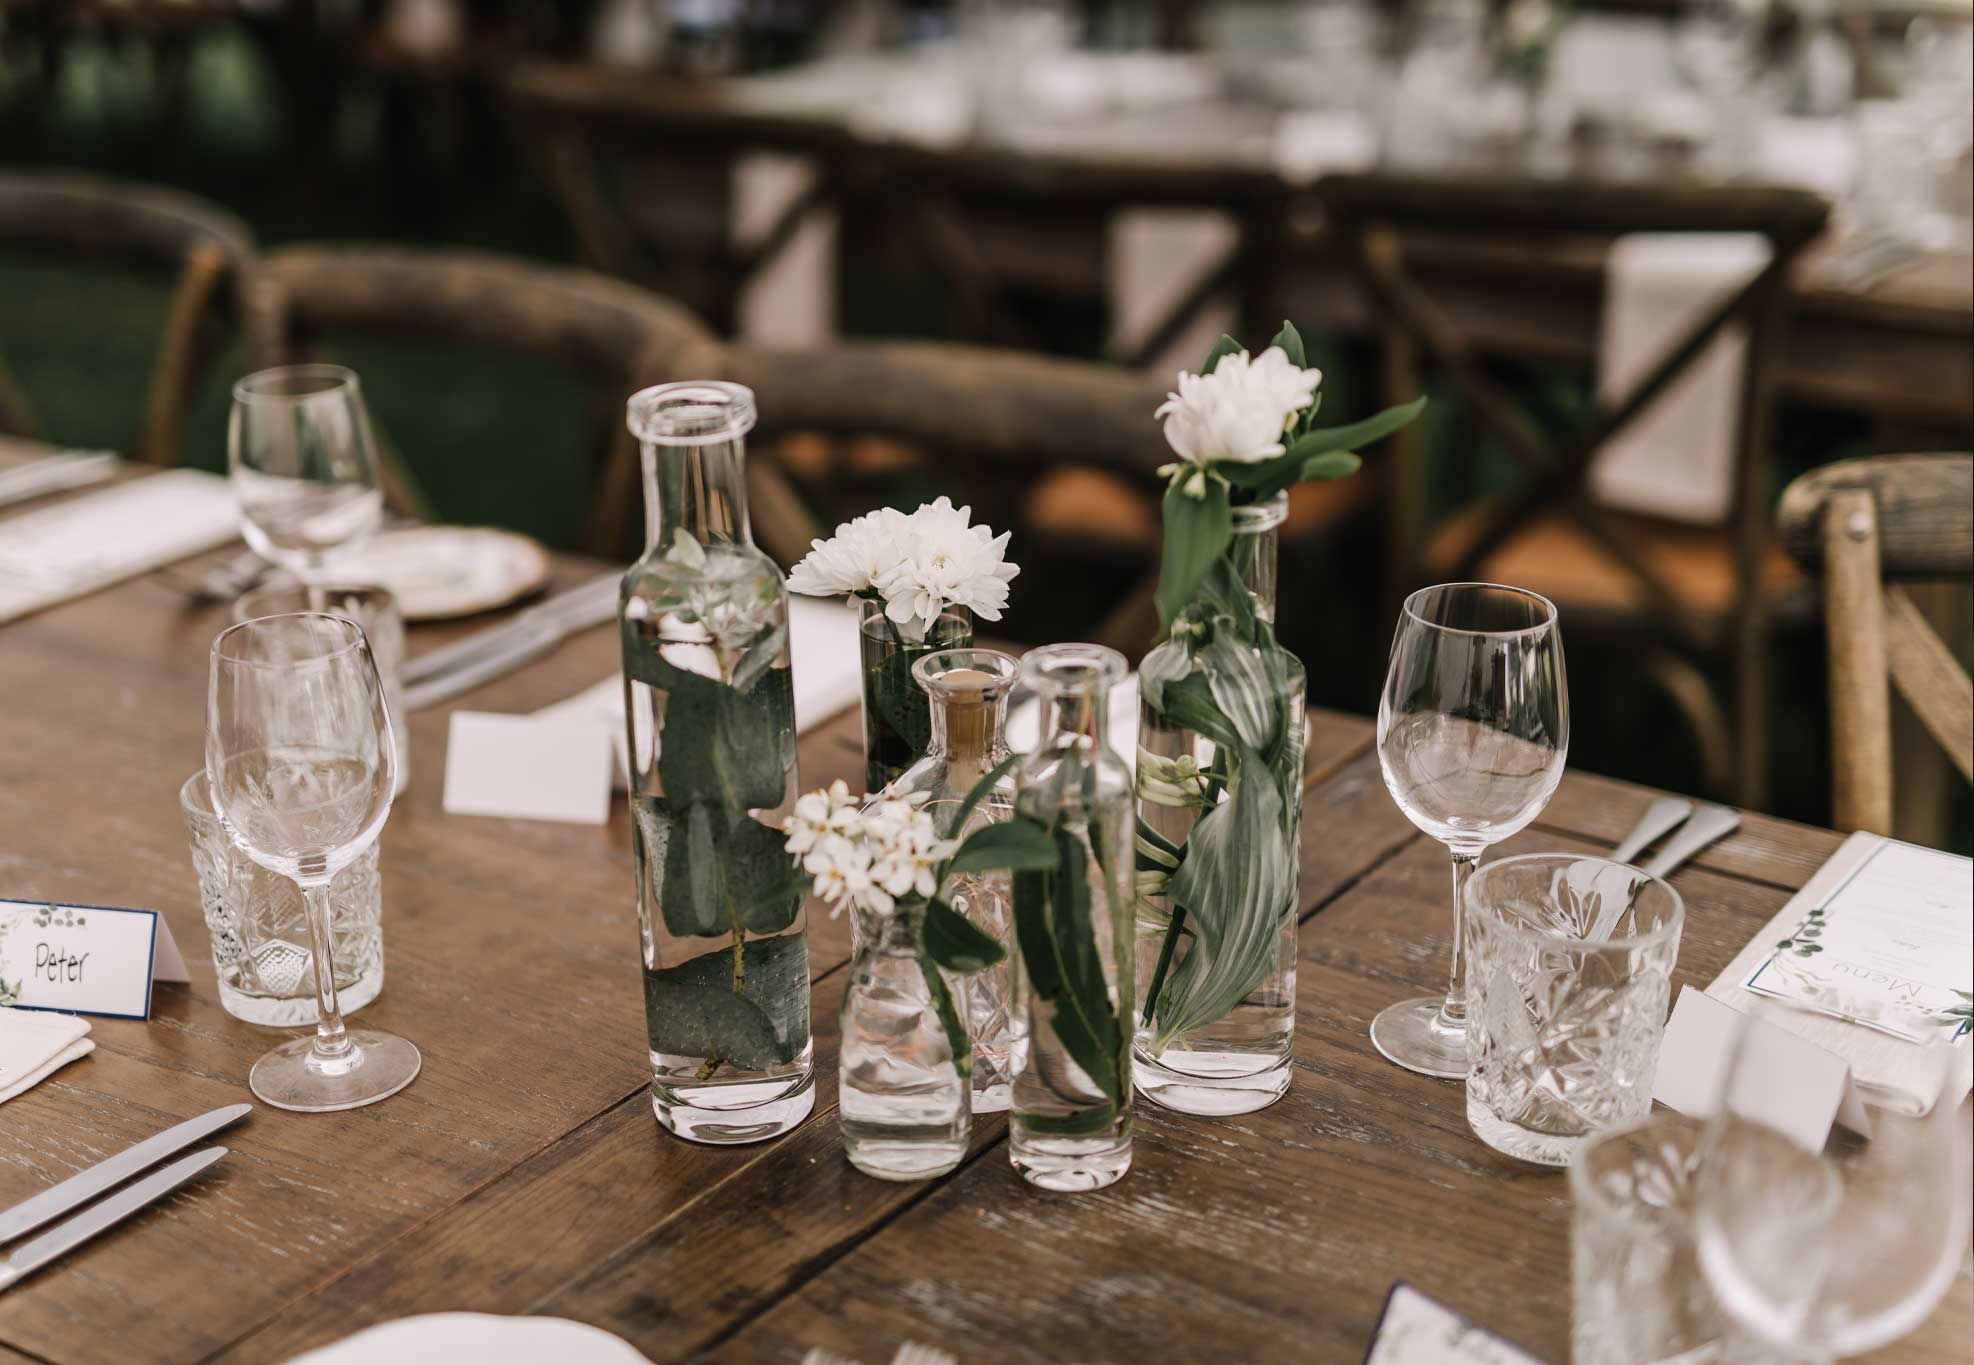 silk-estate-marquee-weddings-and-events-styling-and-hire-glassware-wine-glasses-3